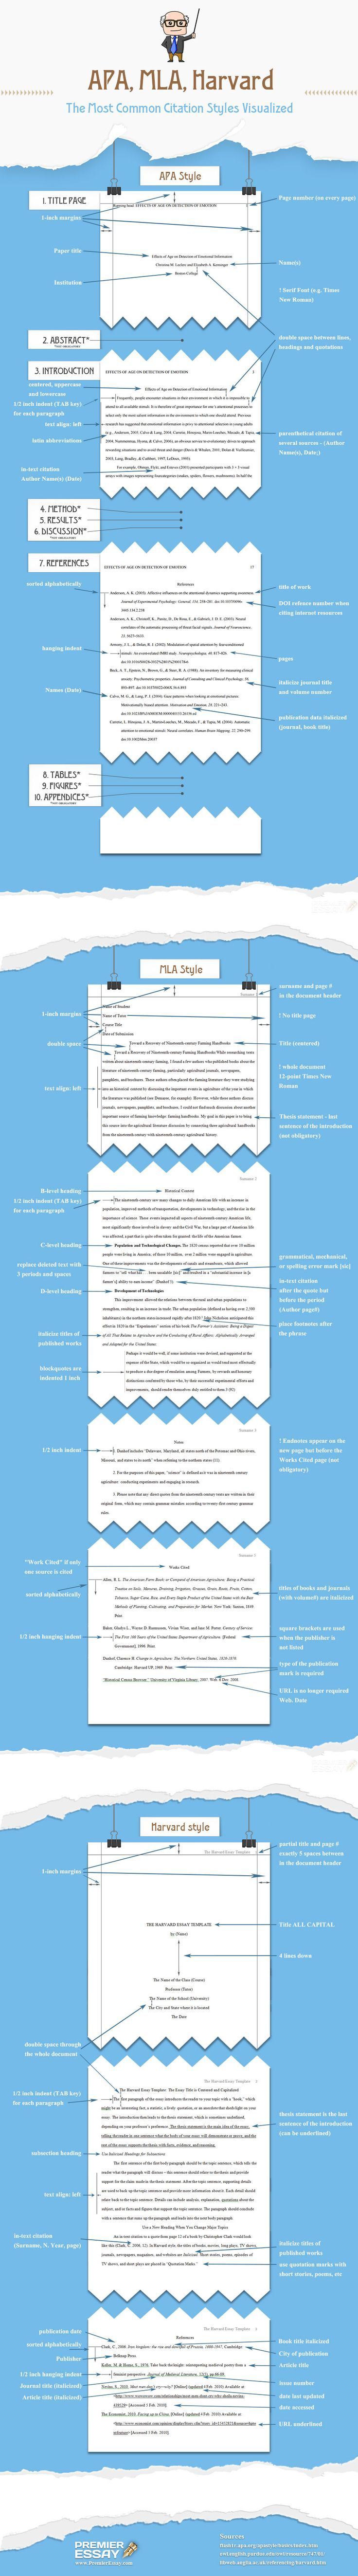 Apa Mla Harvard The Most Common Citation Styles Visualized Infographic College Writing Academic Writing Writing Services